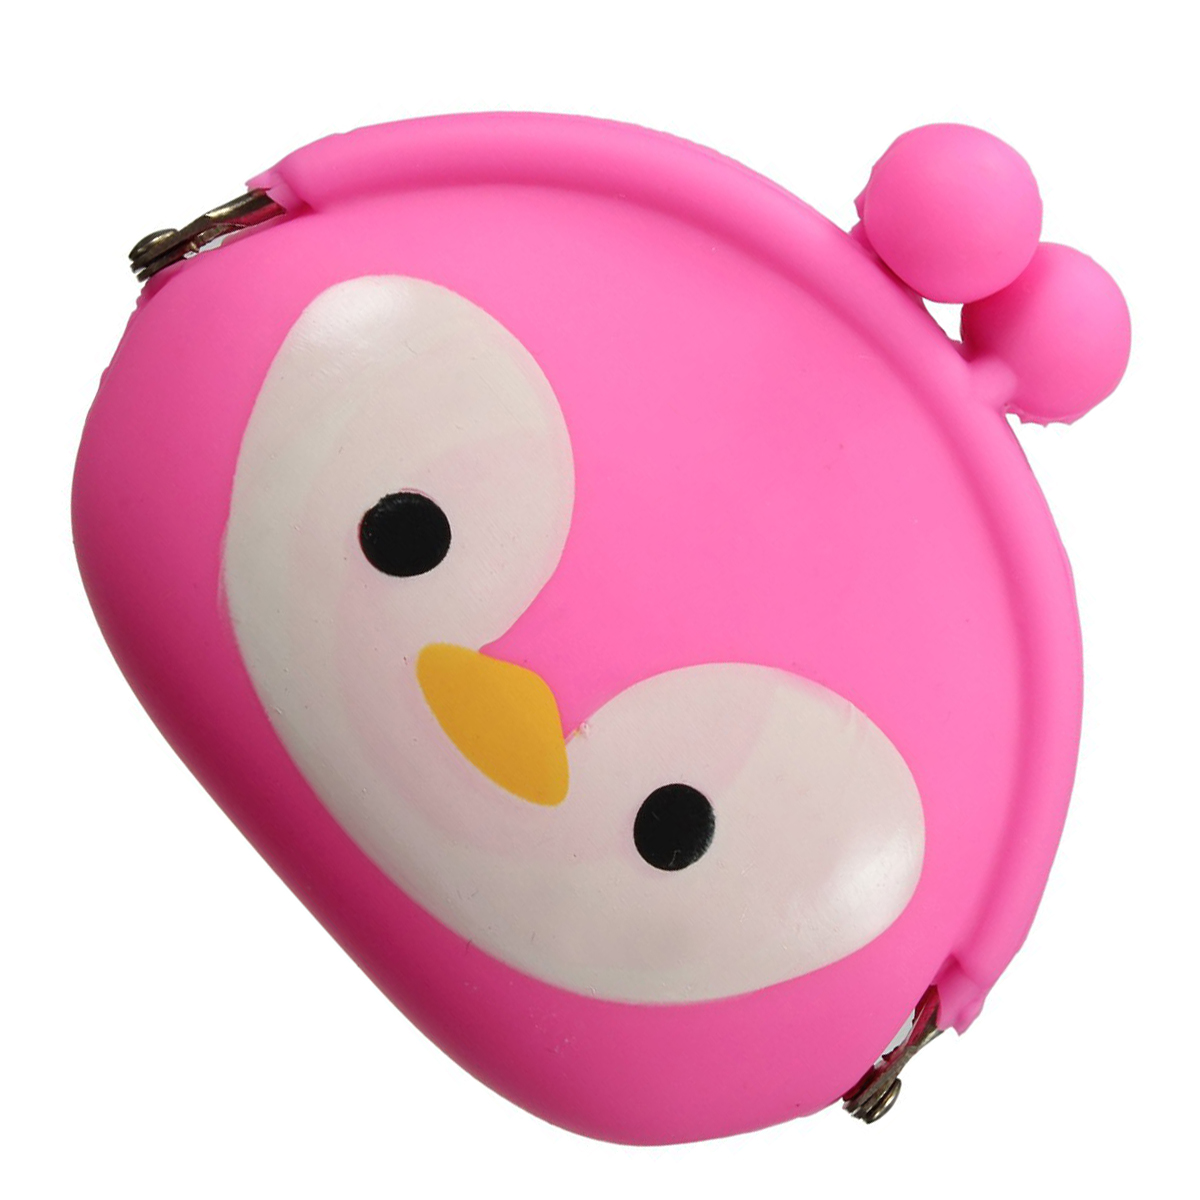 -Women Girls Wallet Kawaii Cute Cartoon Animal Silicone Jelly Coin Bag Purse Kids Gift Penguin women girls wallet kawaii cute cartoon animal silicone jelly coin bag purse kids gift duck